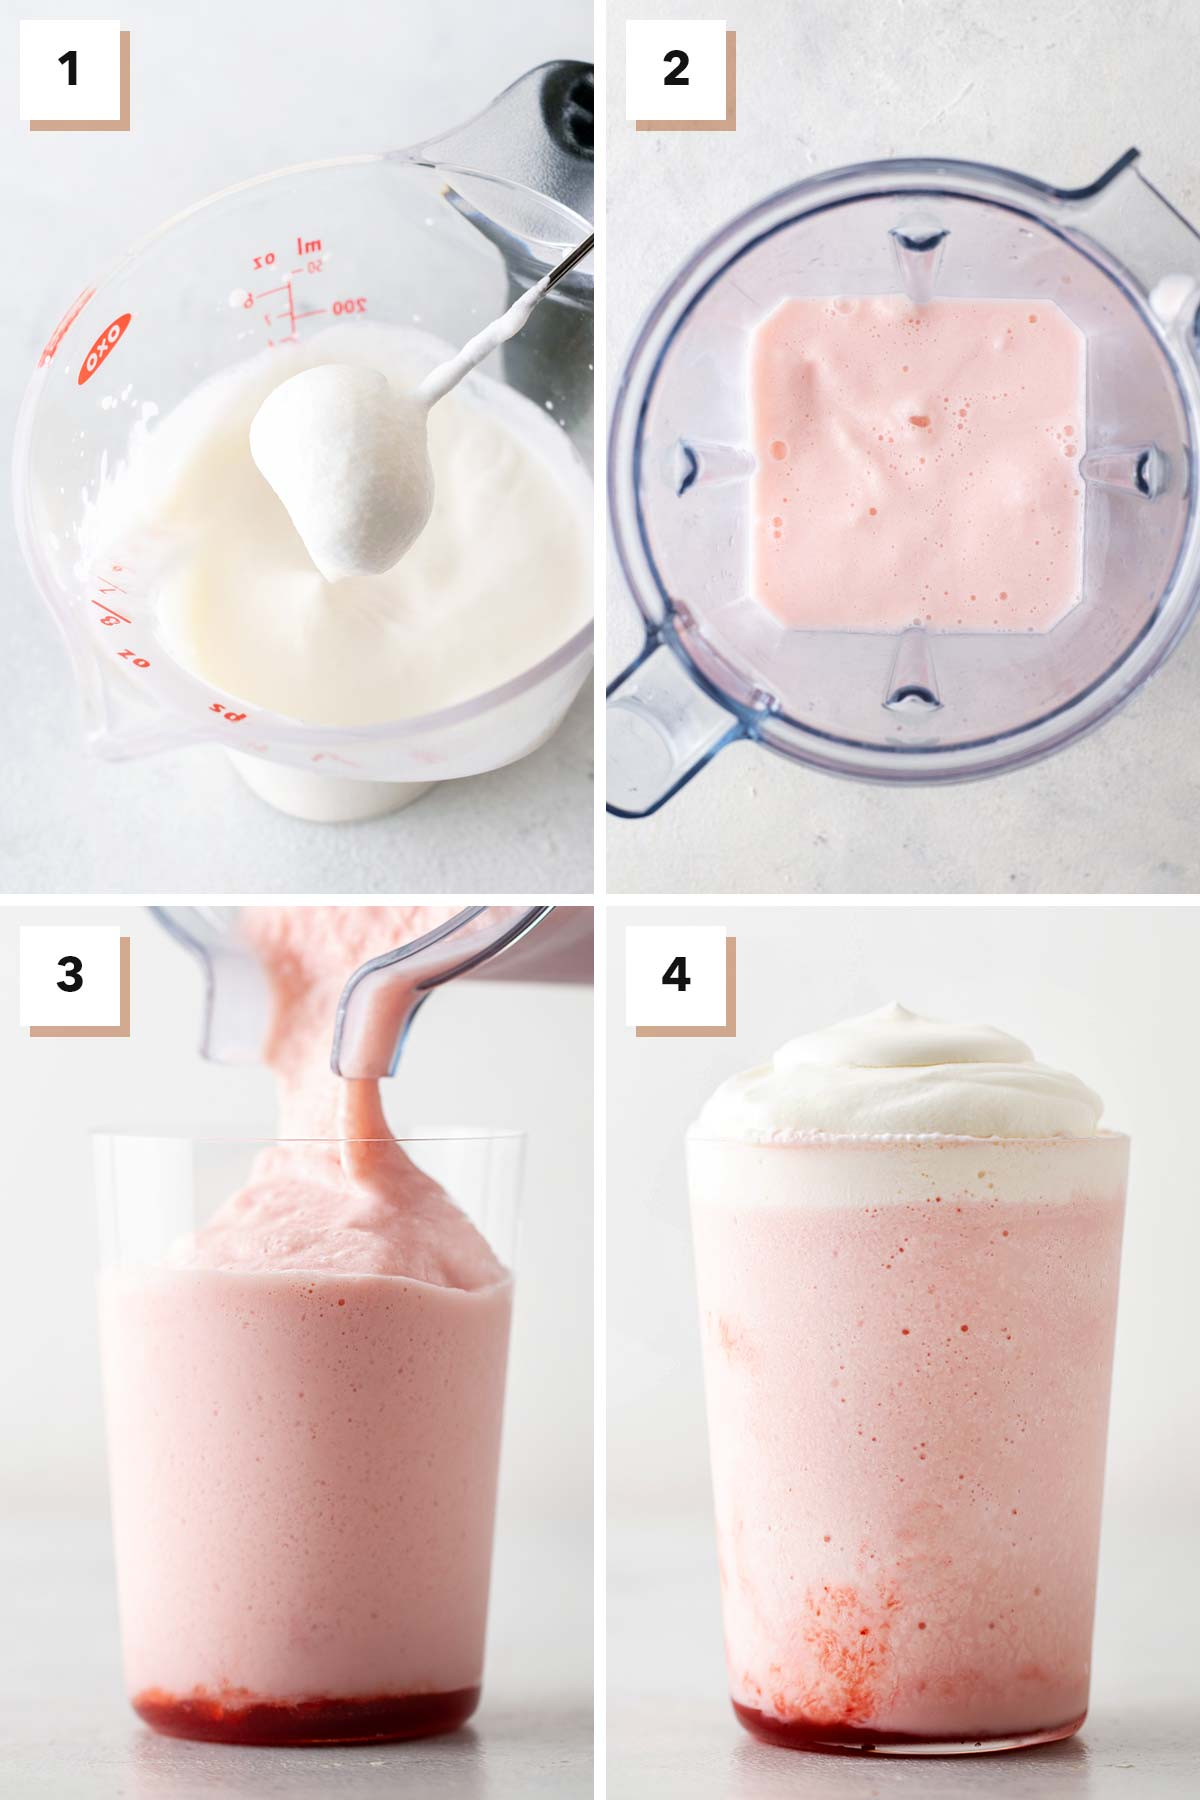 Four photo collage showing steps to make a Strawberry Frappuccino.